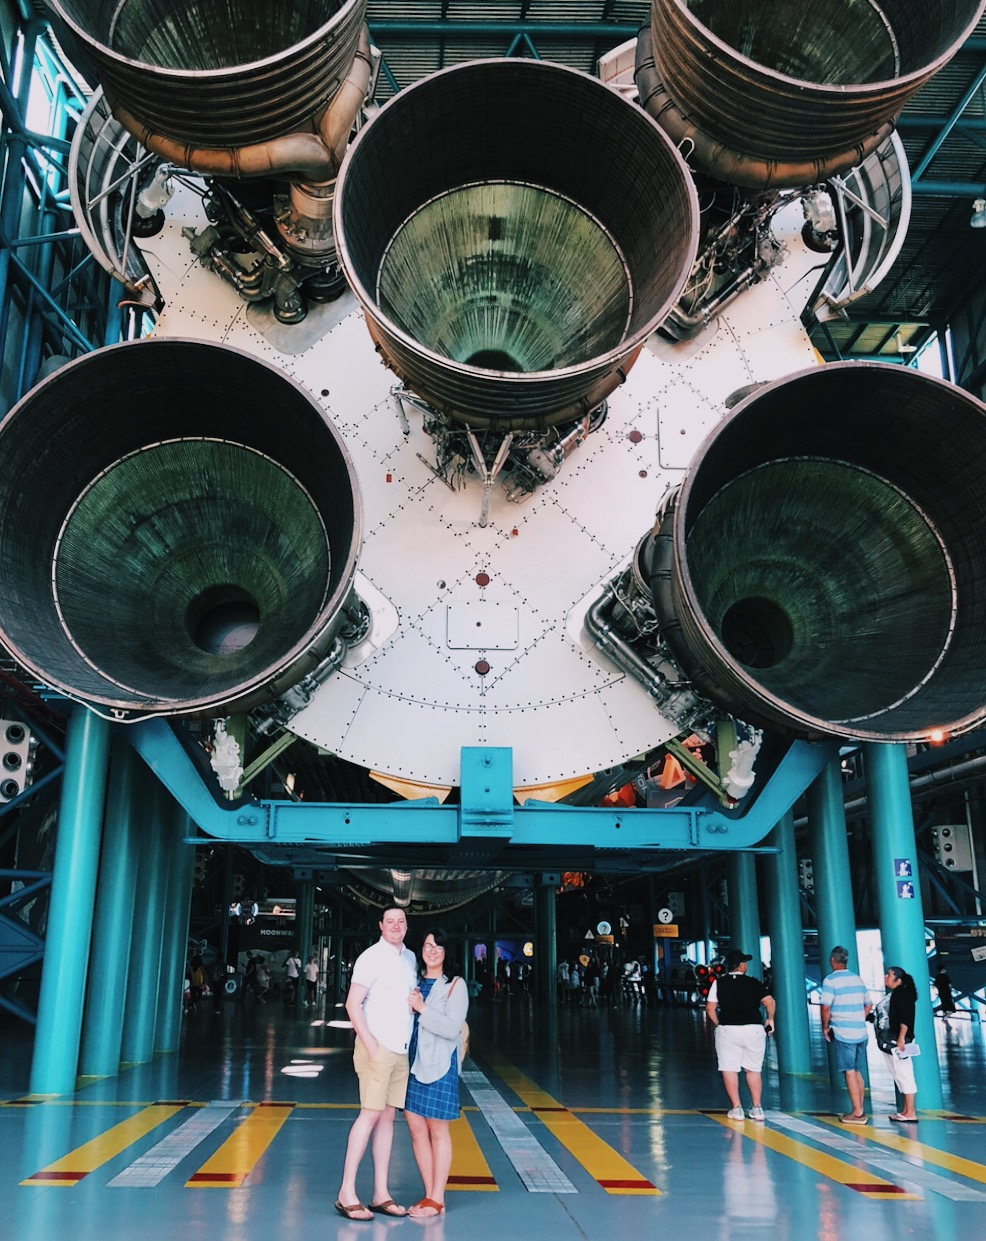 Chance and I infront of Saturn Five.The quality of the picture isn't the best due to trying to fit all of this massive shuttle into the picture.